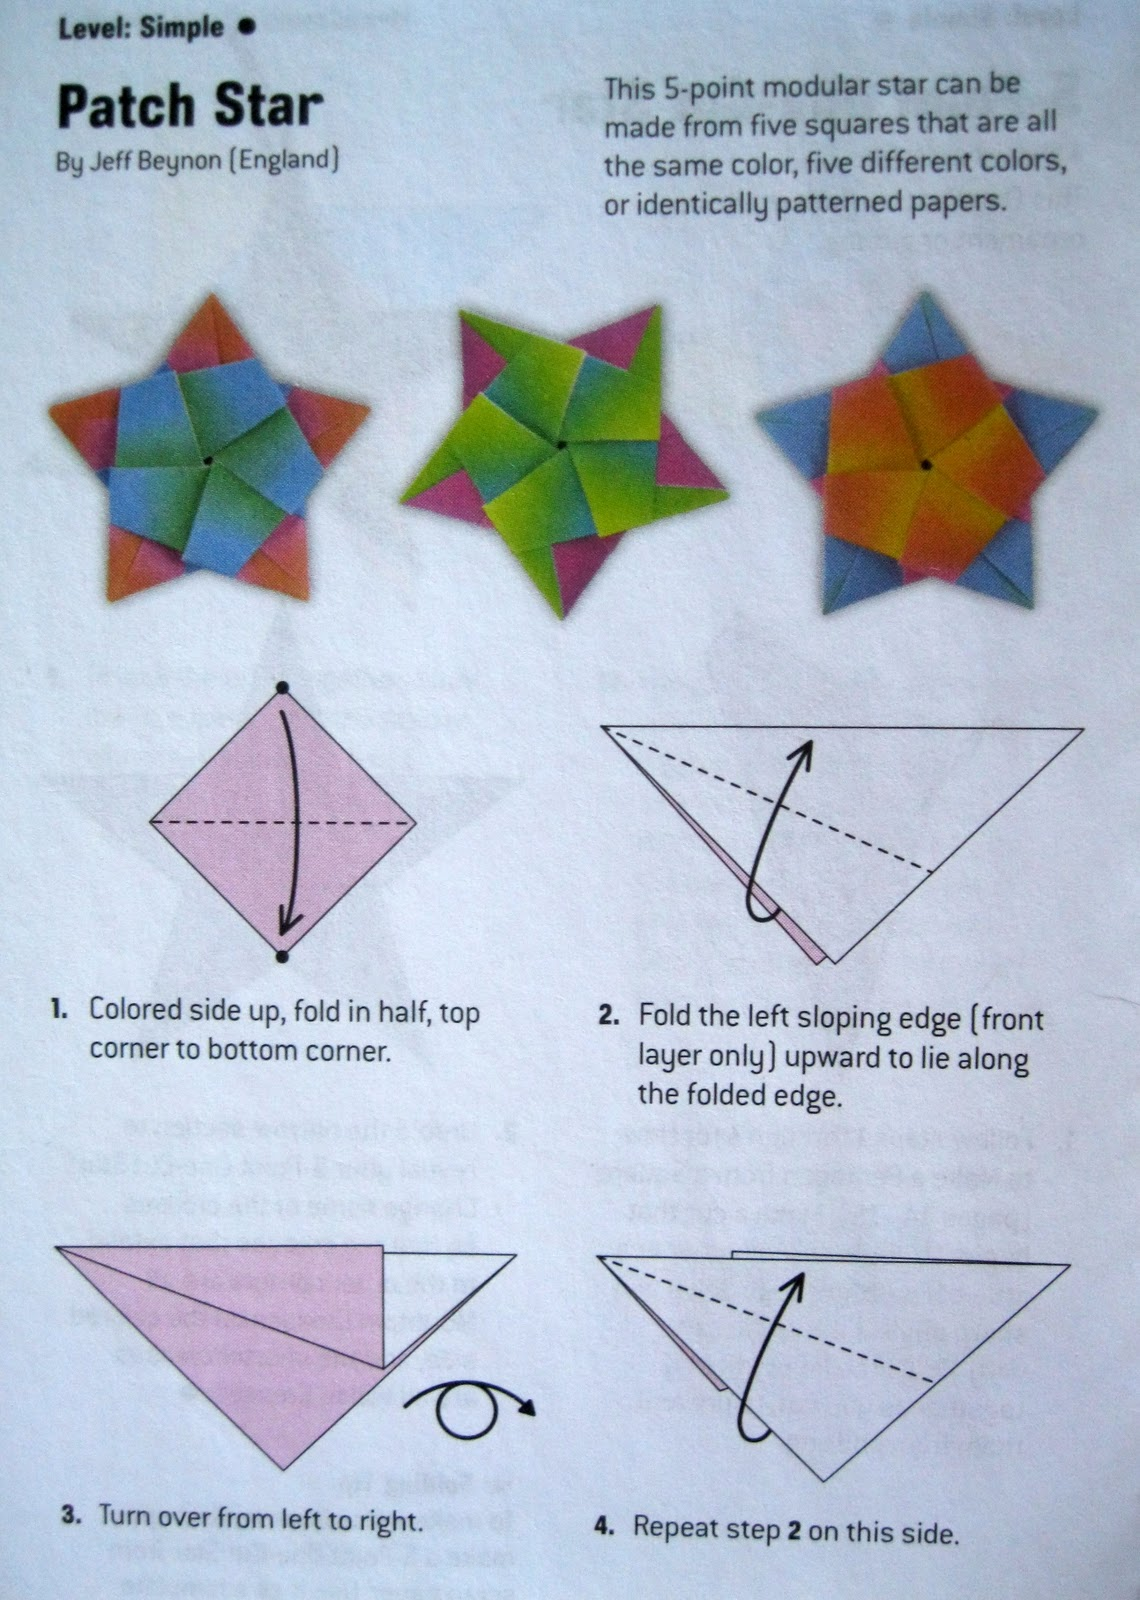 Paper stars how to make 5 pointed 3 d craft thyme - Origami Directions For A Five Pointed Star